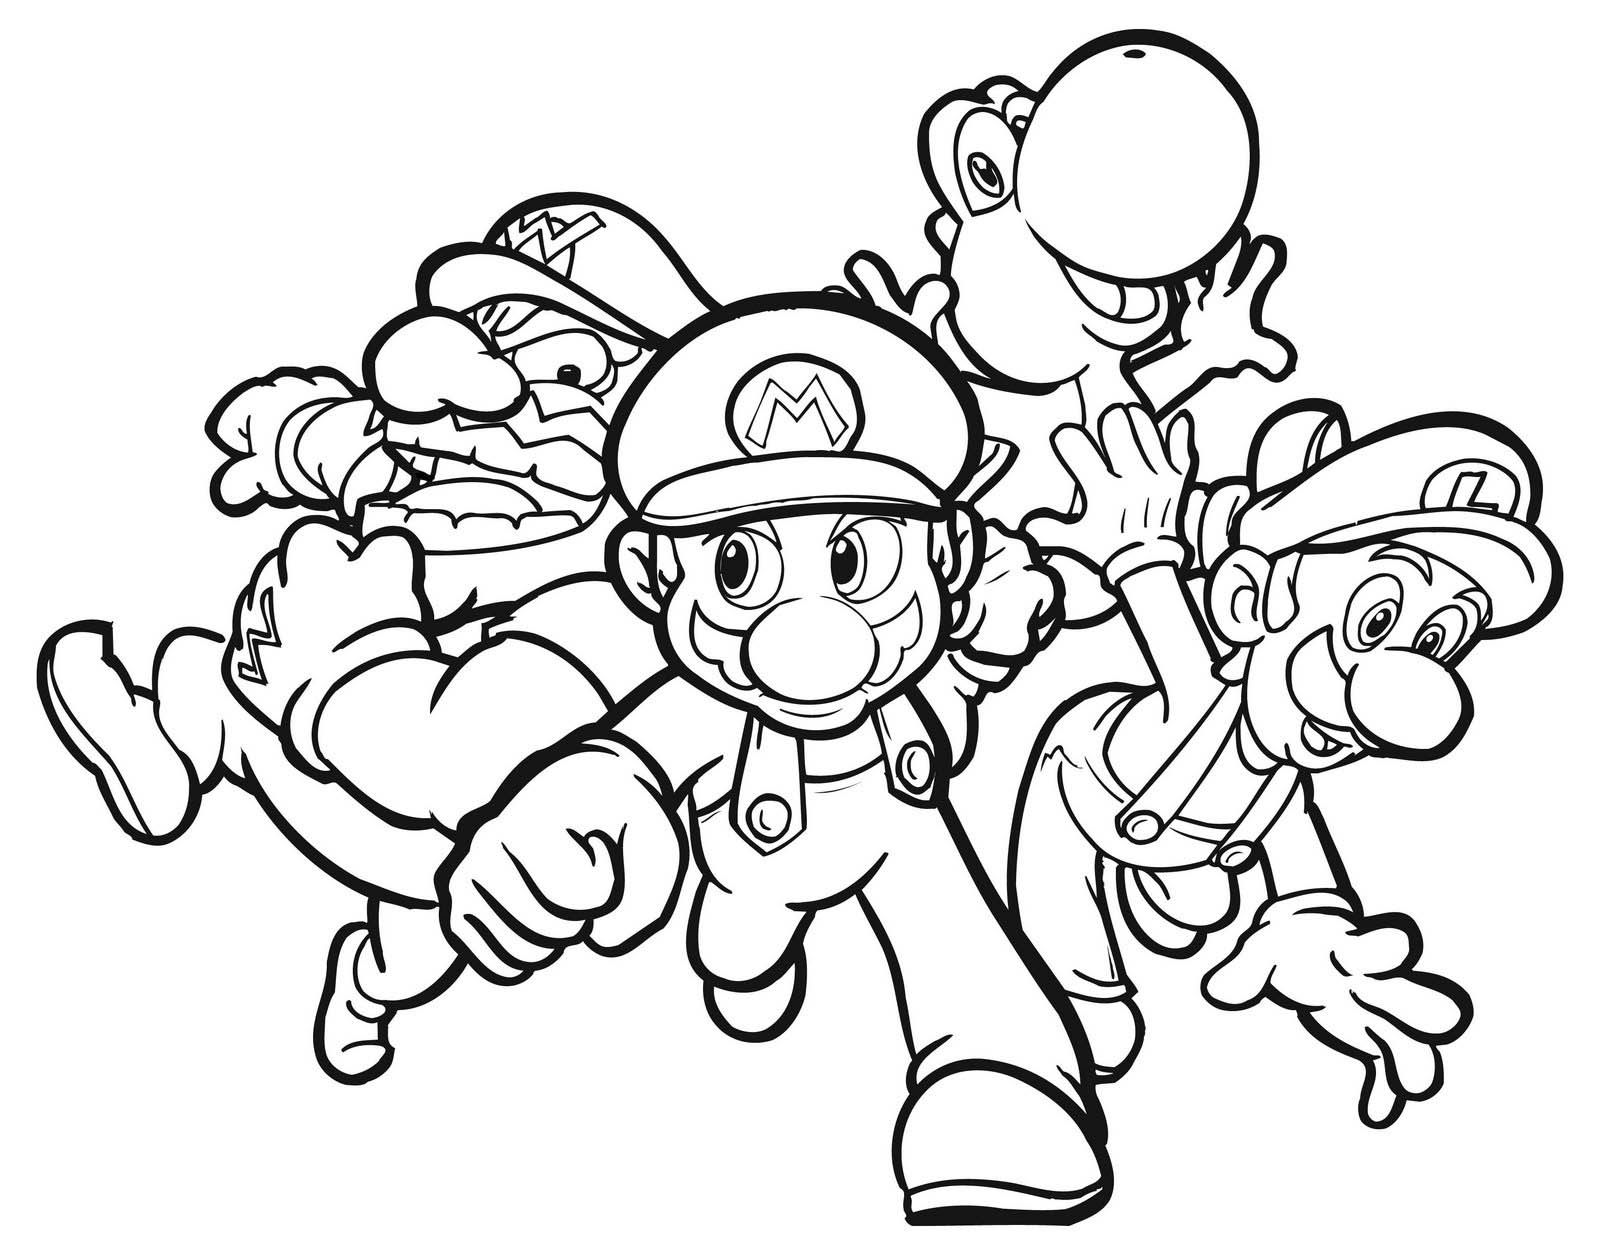 mario characters coloring pages - photo#16